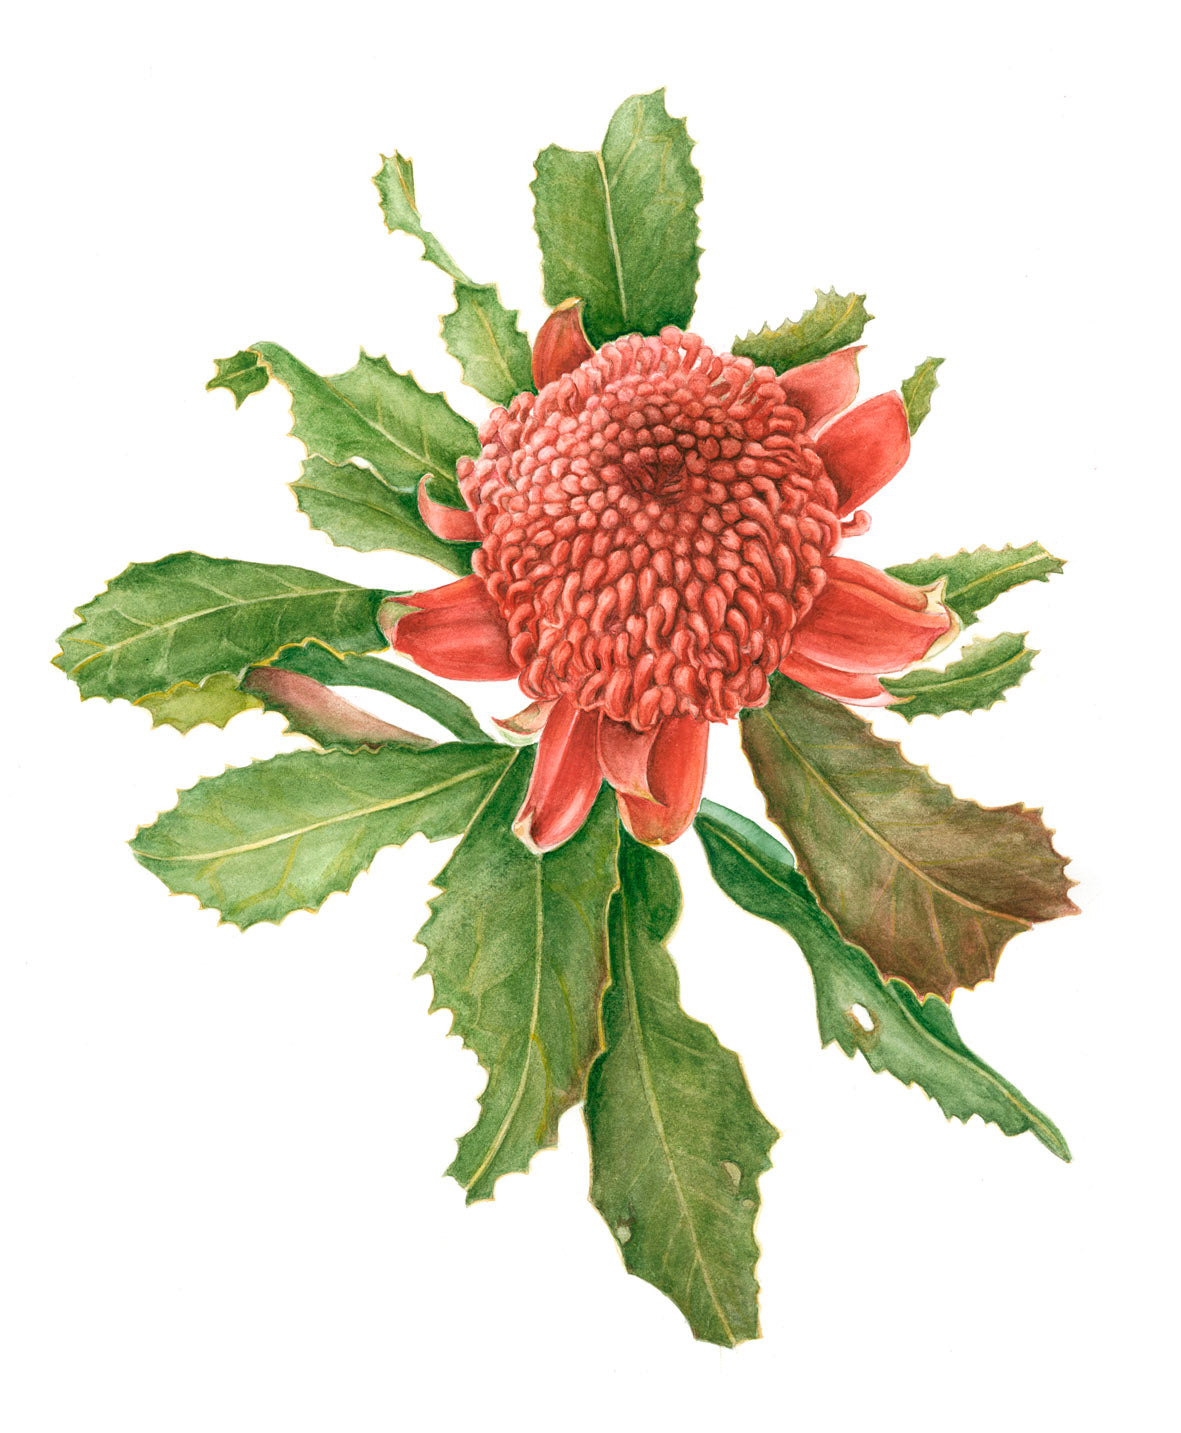 Our May Artist in Focus is Alison Dickin Botanical Artist